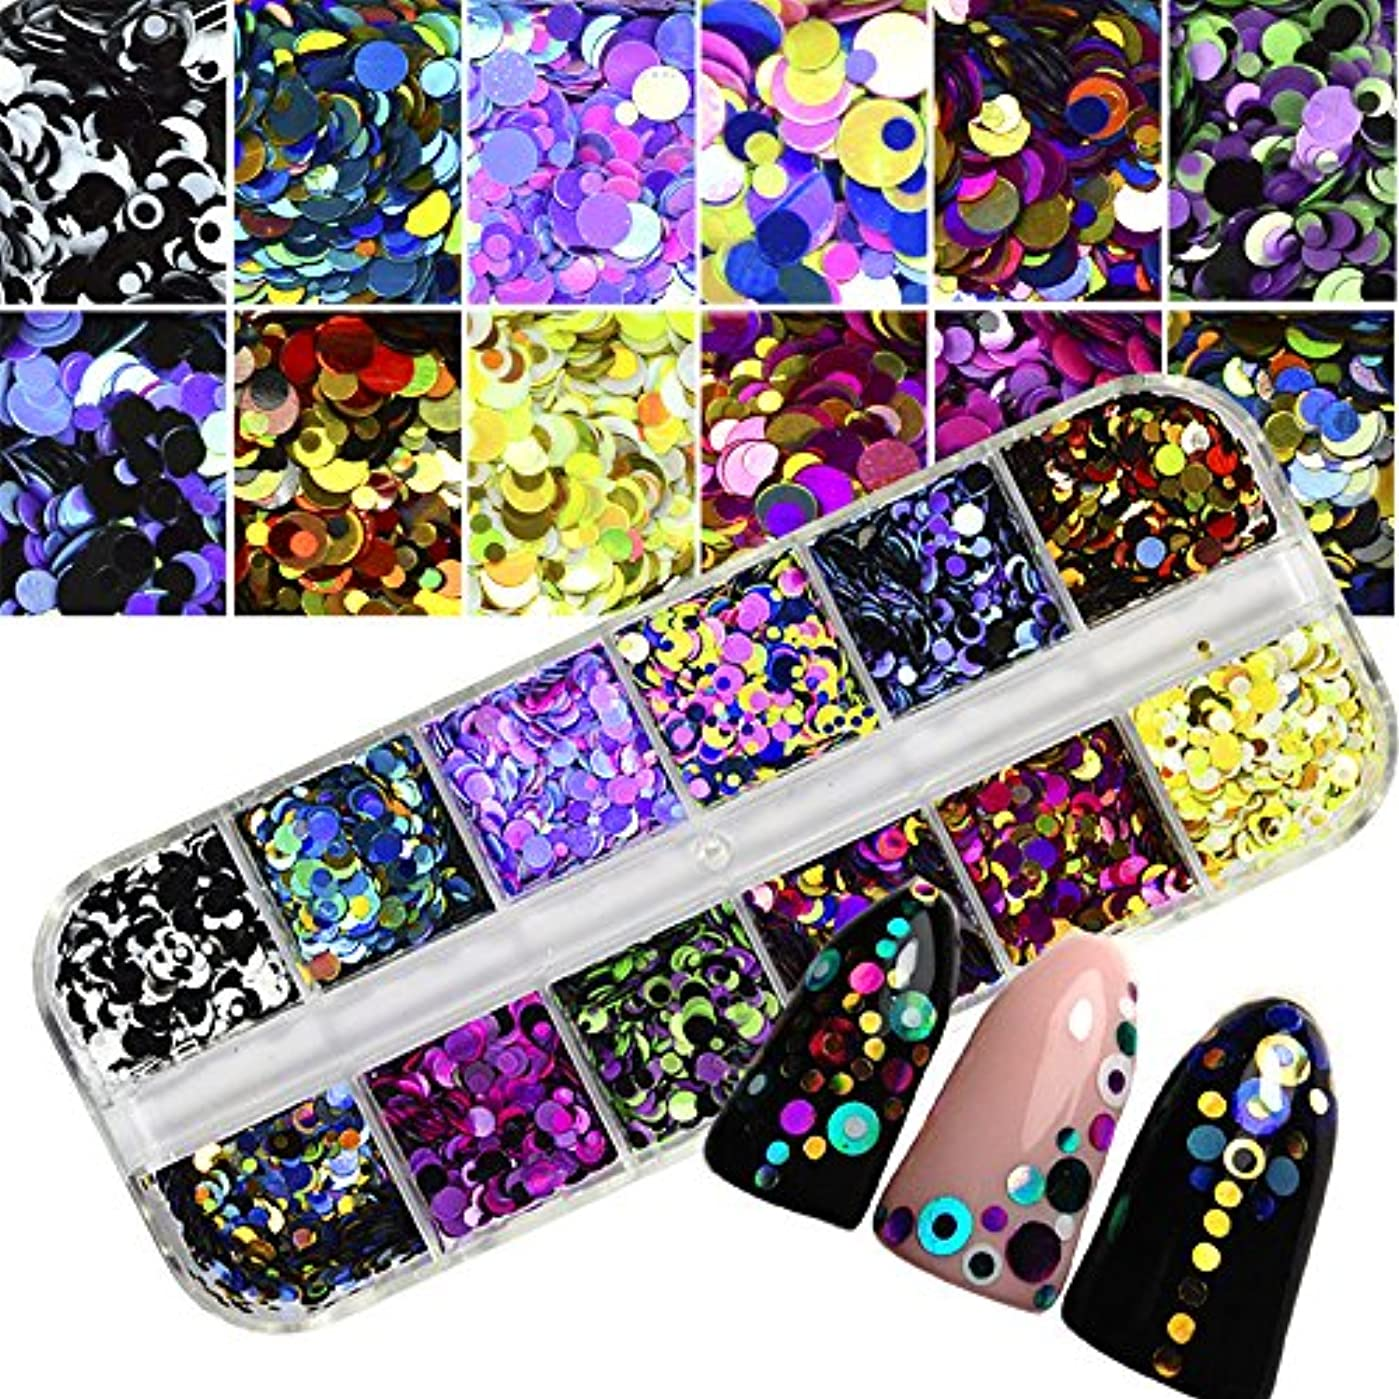 増幅器サイクル閉塞1 Set Dazzling Round Nail Glitter Sequins Dust Mixed 12 Grids 1/2/3mm DIY Charm Polish Flakes Decorations Manicure...